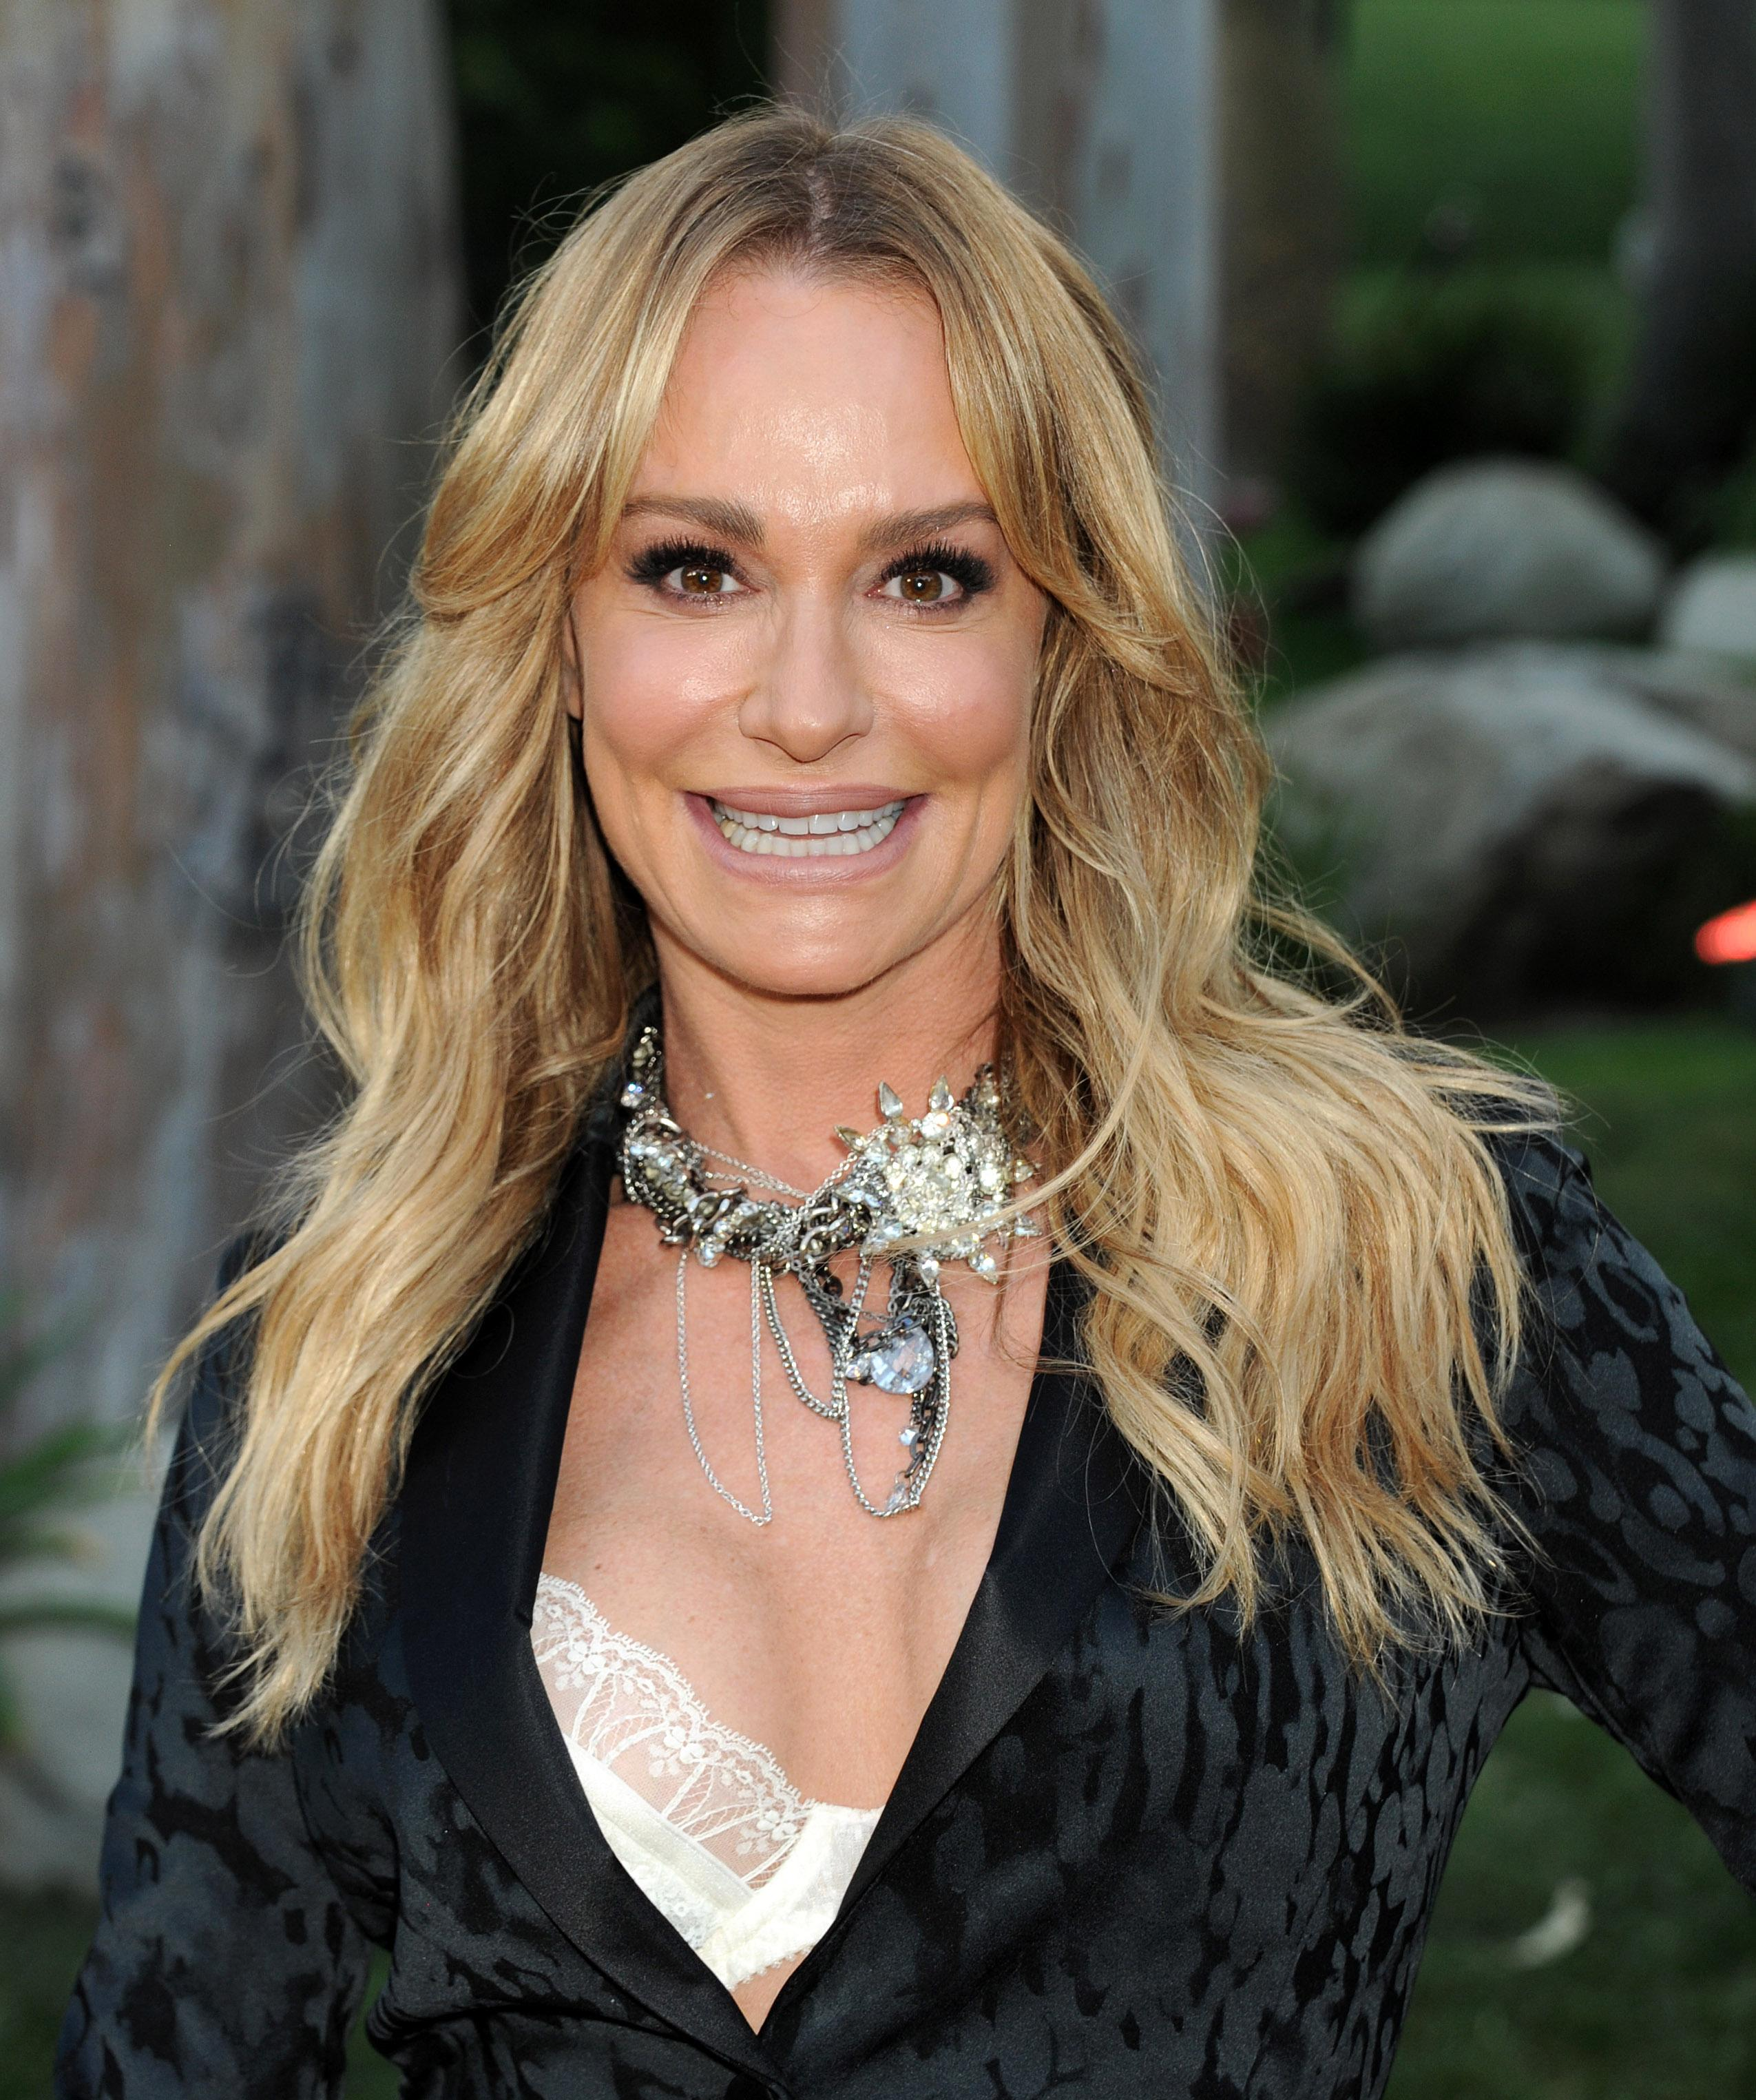 Taylor Armstrong Dishes On Life After Real Housewives of